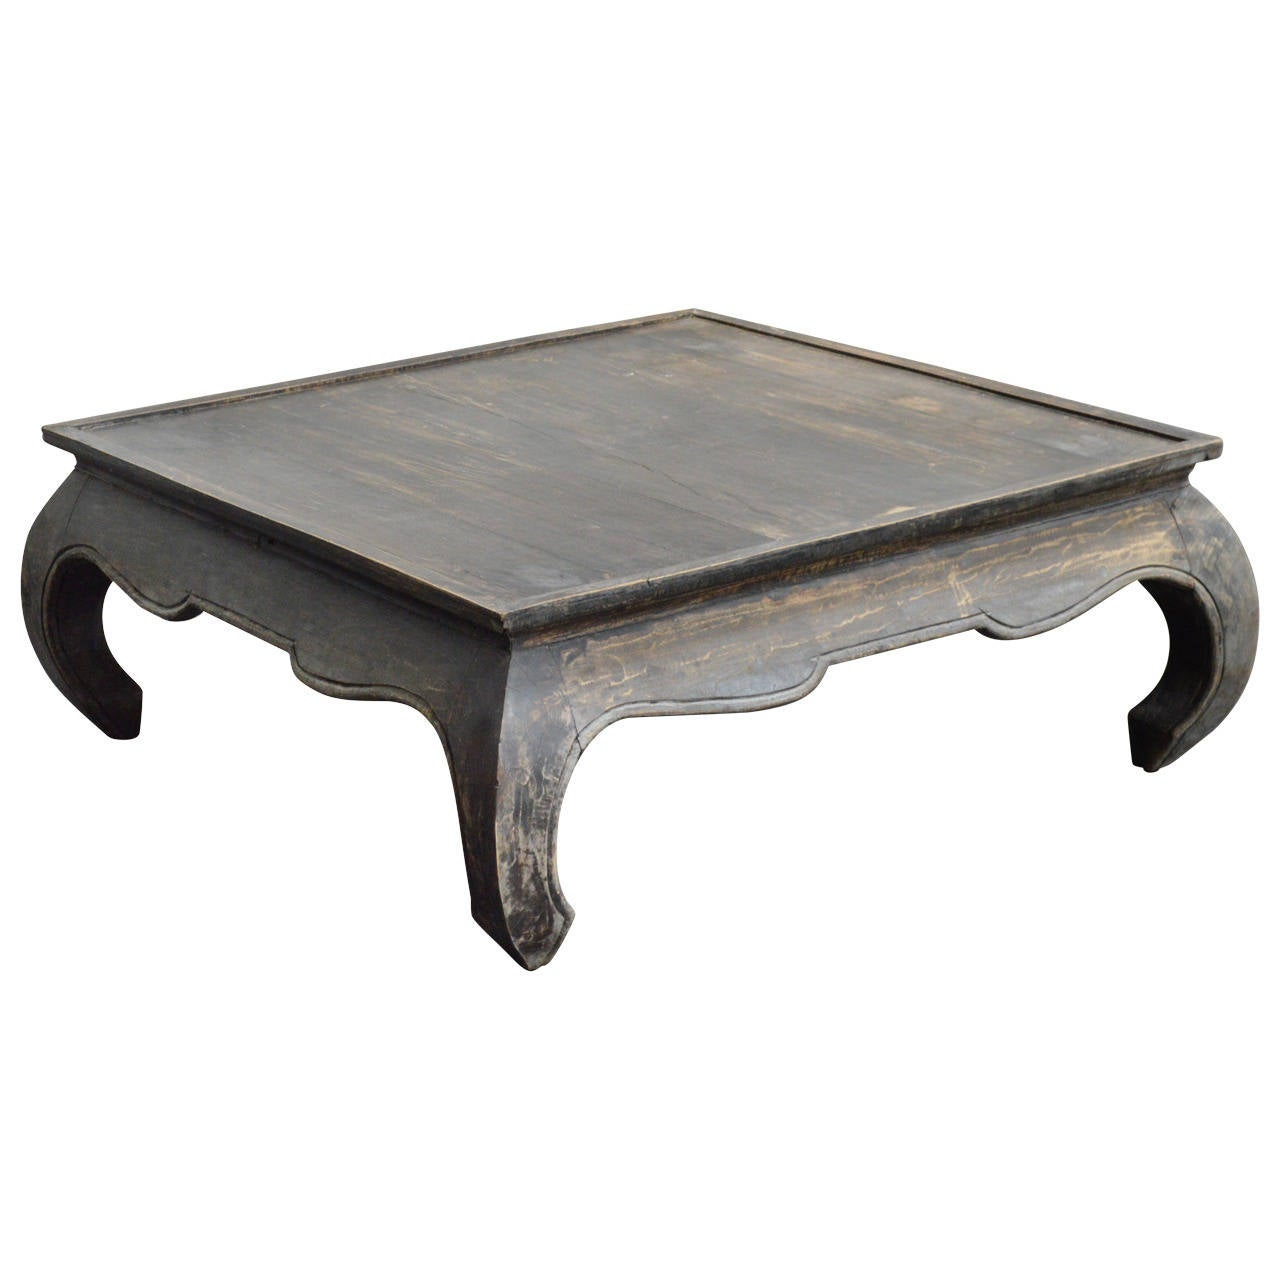 Vintage square opium leg coffee table at 1stdibs for Vintage coffee table